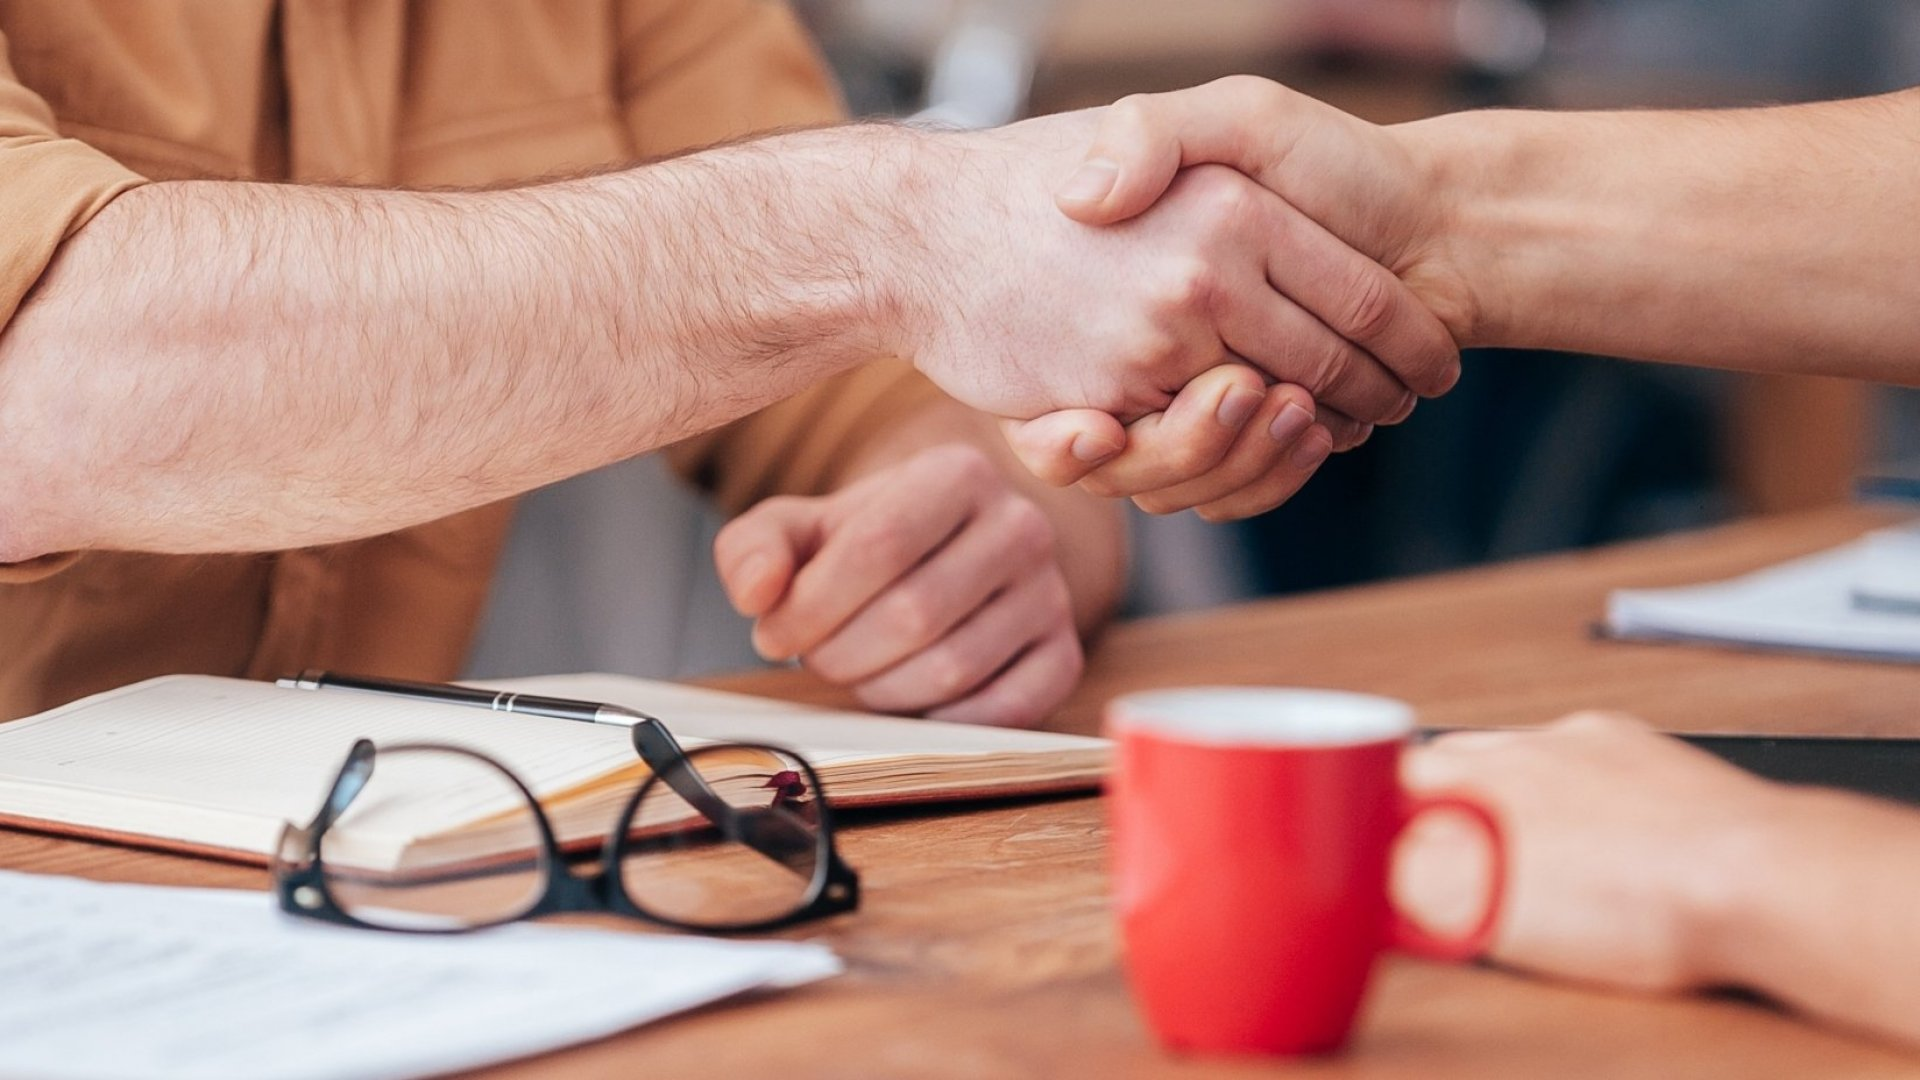 How To Make Anyone Like You Instantly and Close More Sales